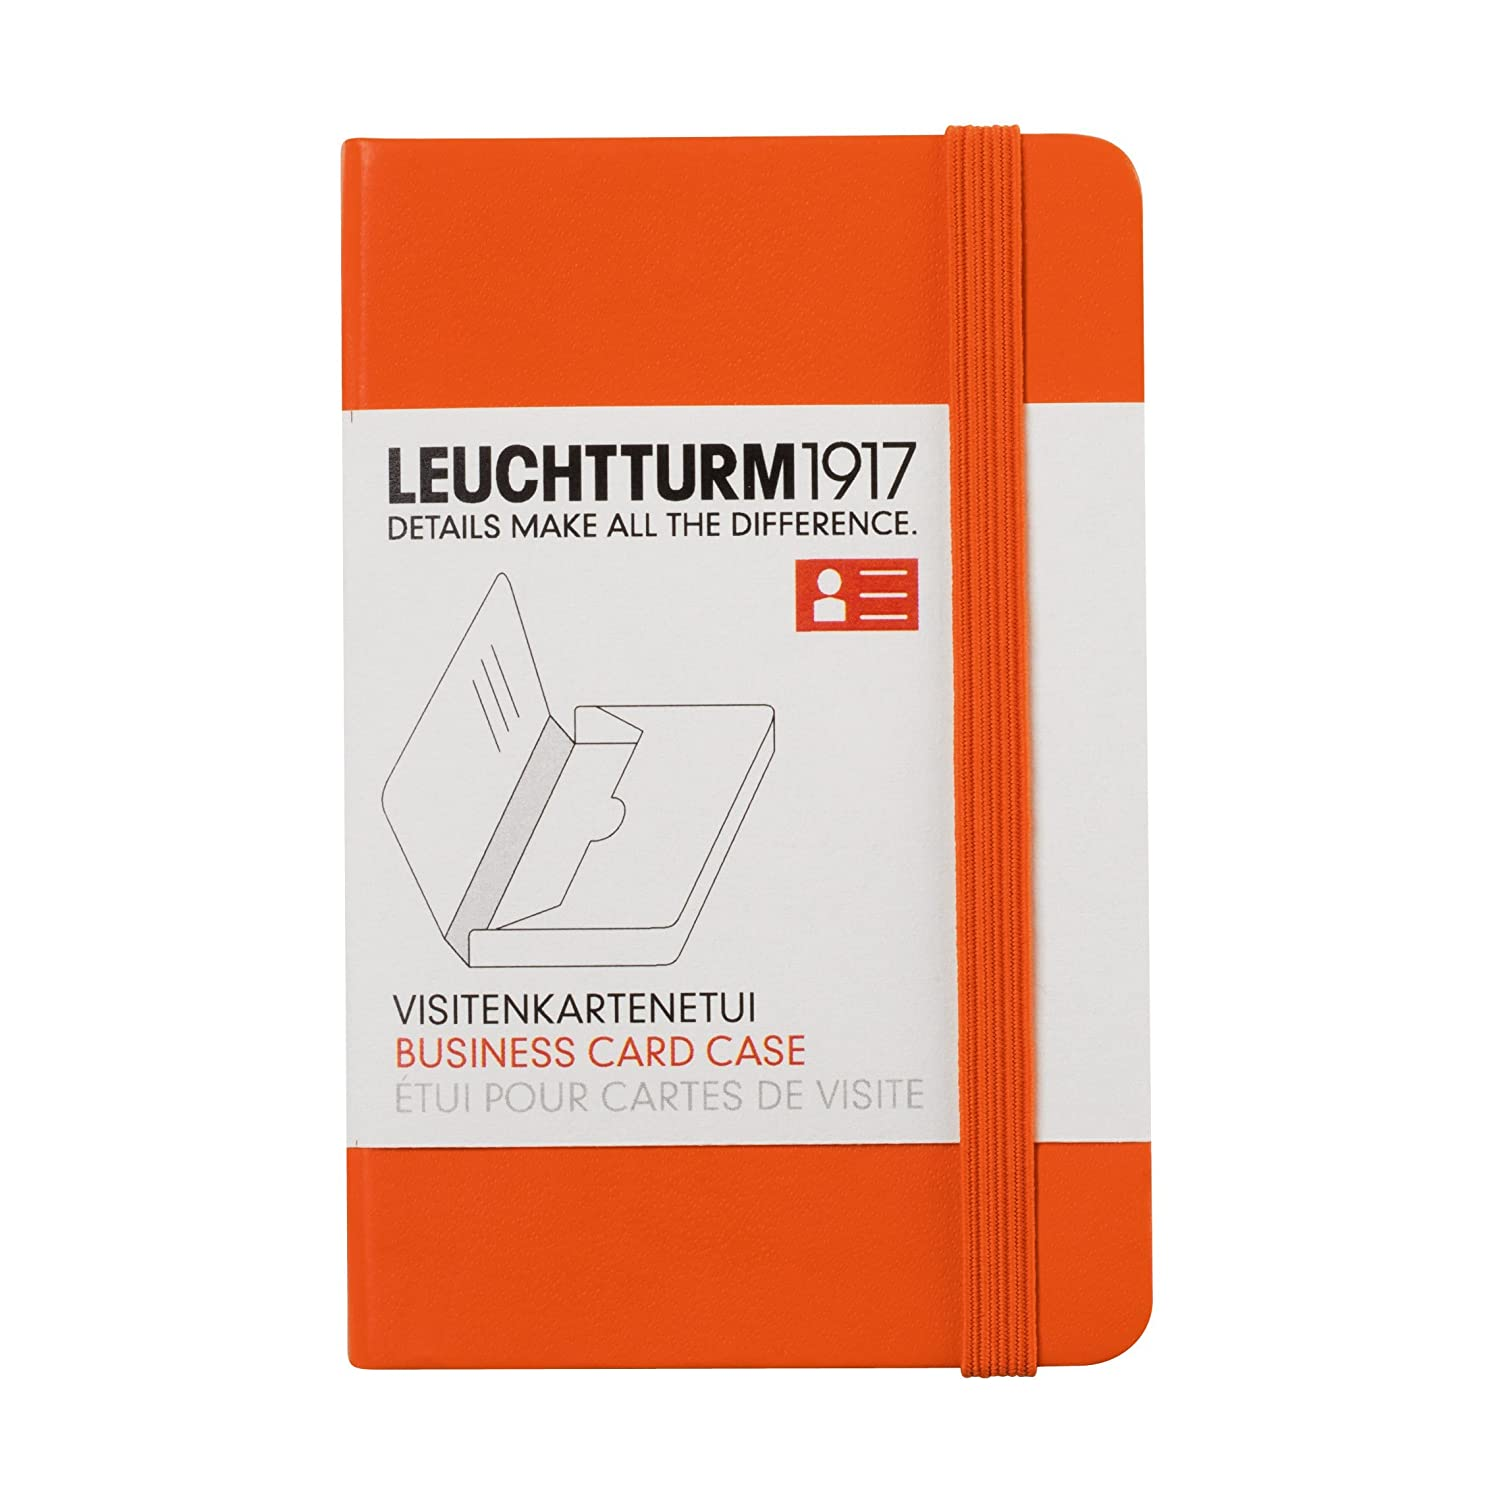 leuchtturm1917 business card holder orange office